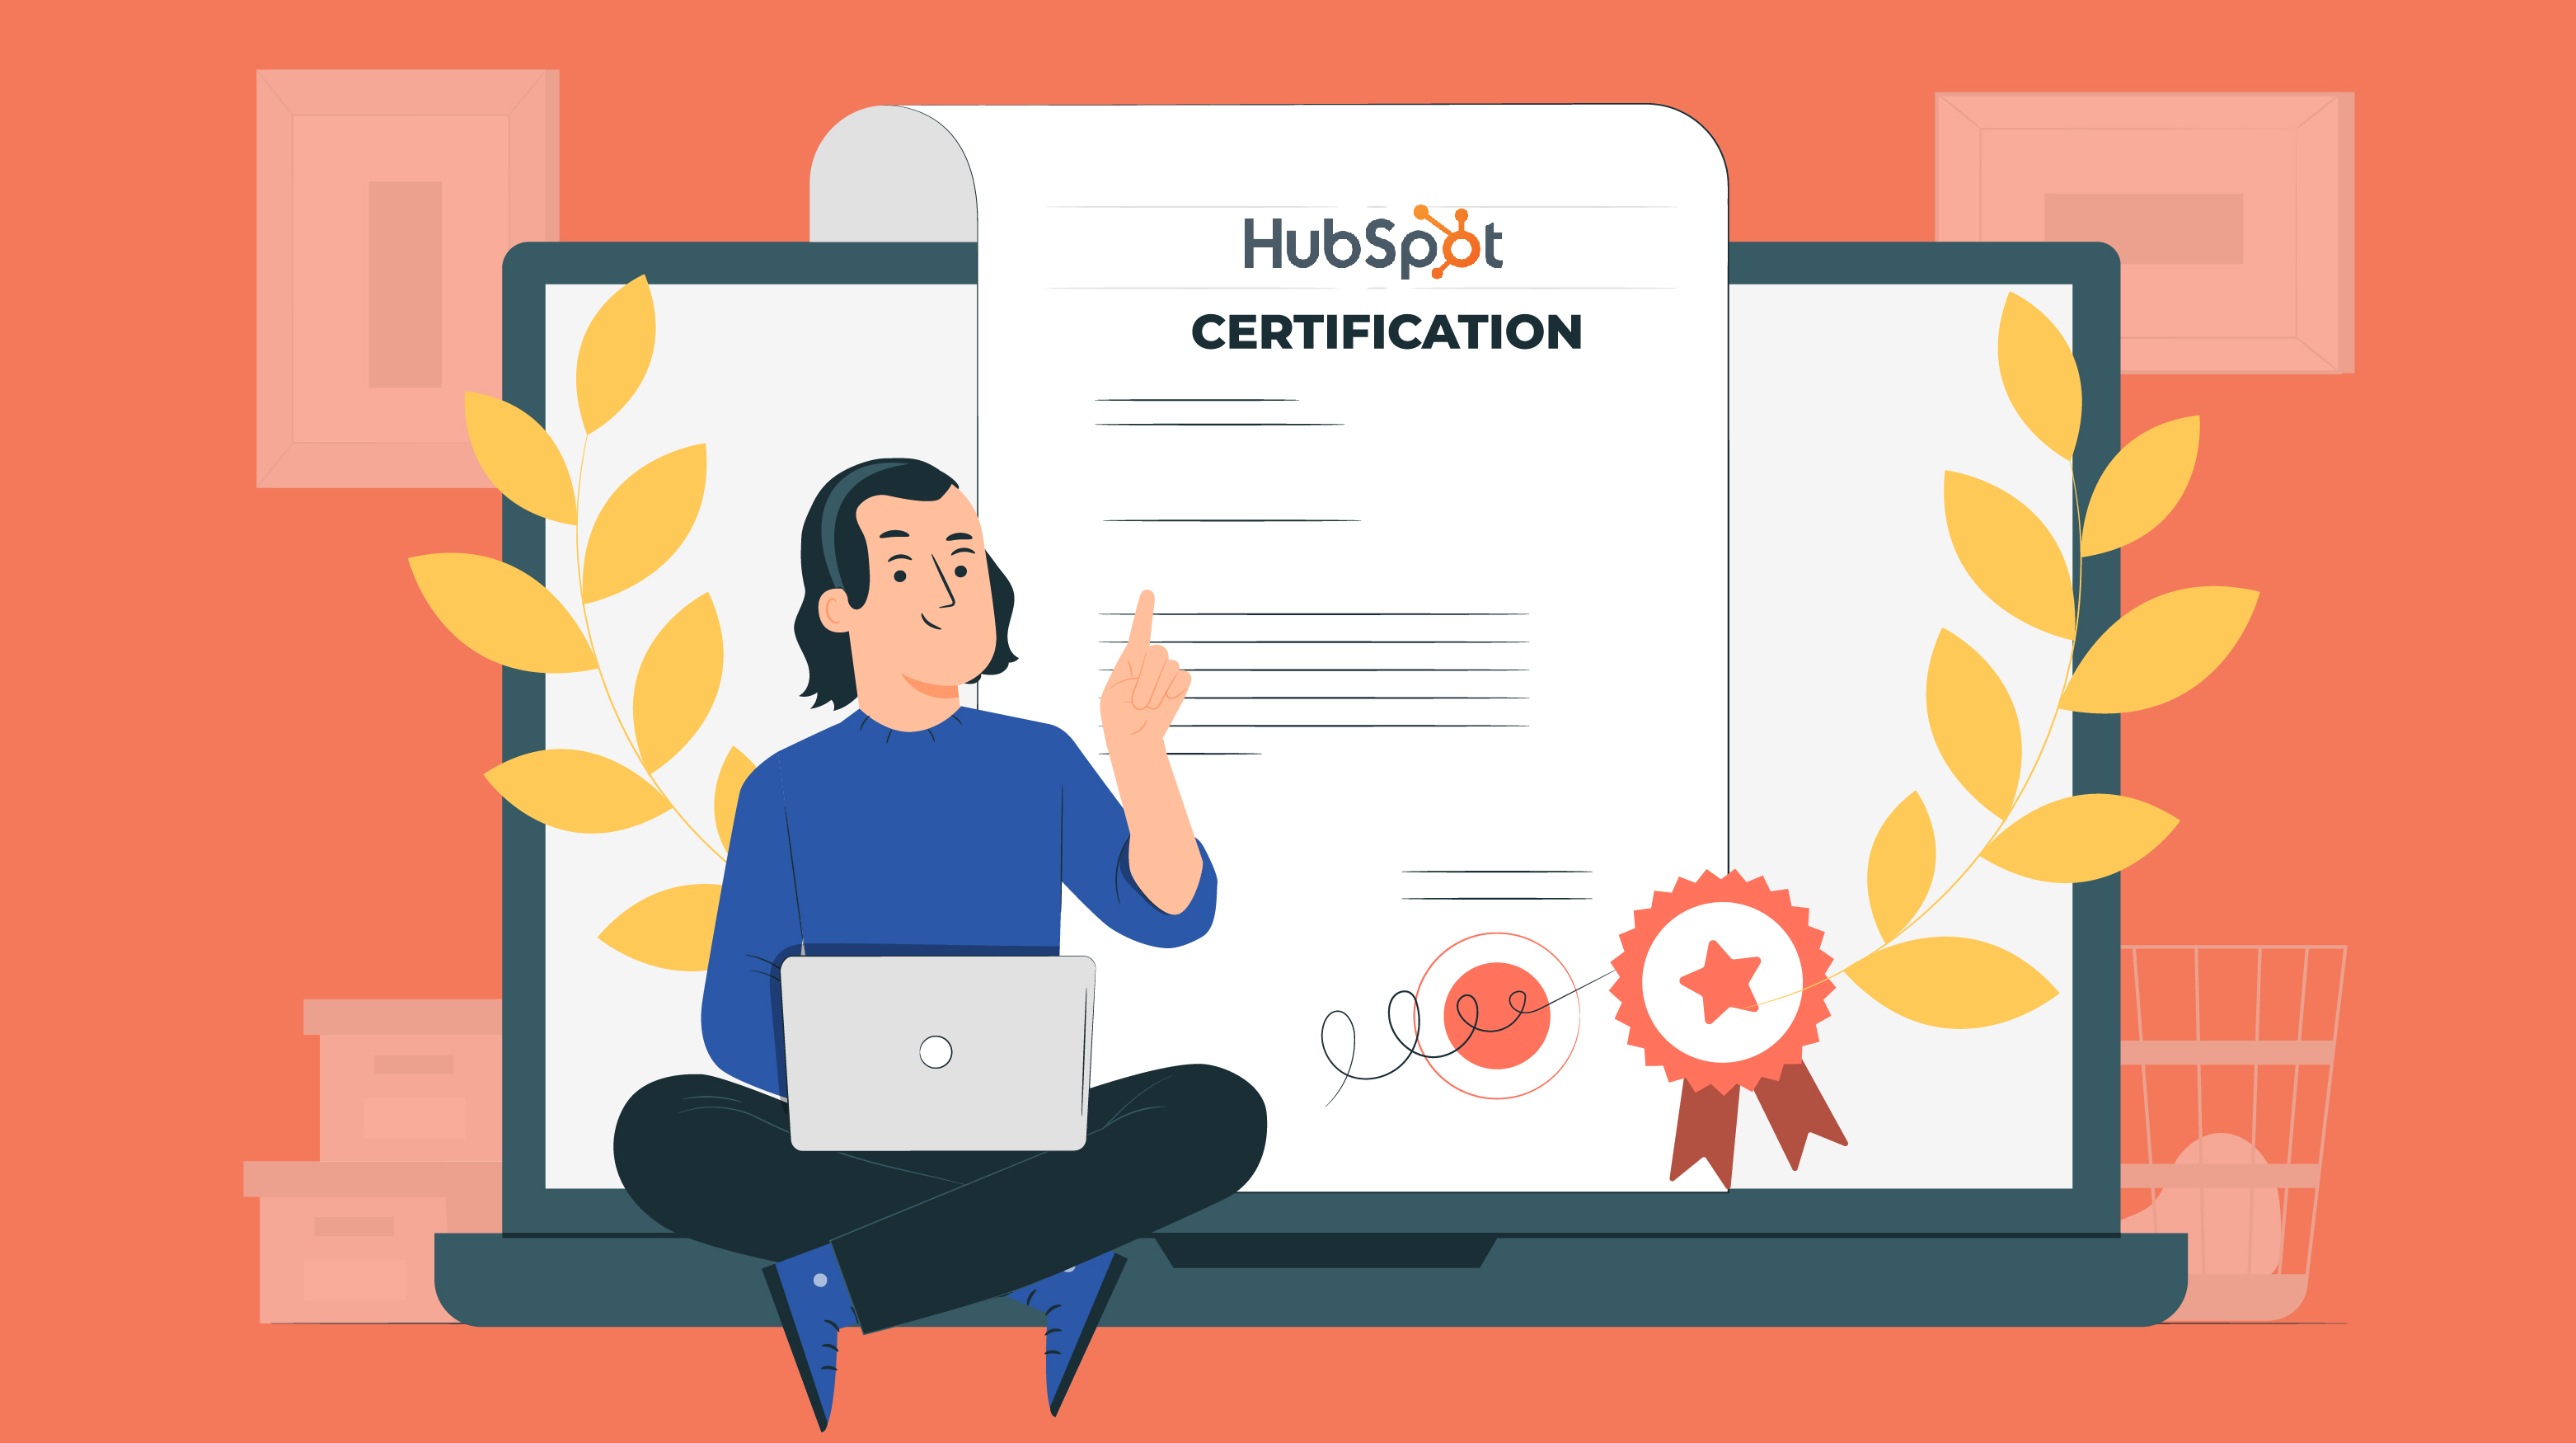 9 Reasons how HubSpot Certifications can help you Grow in 2021